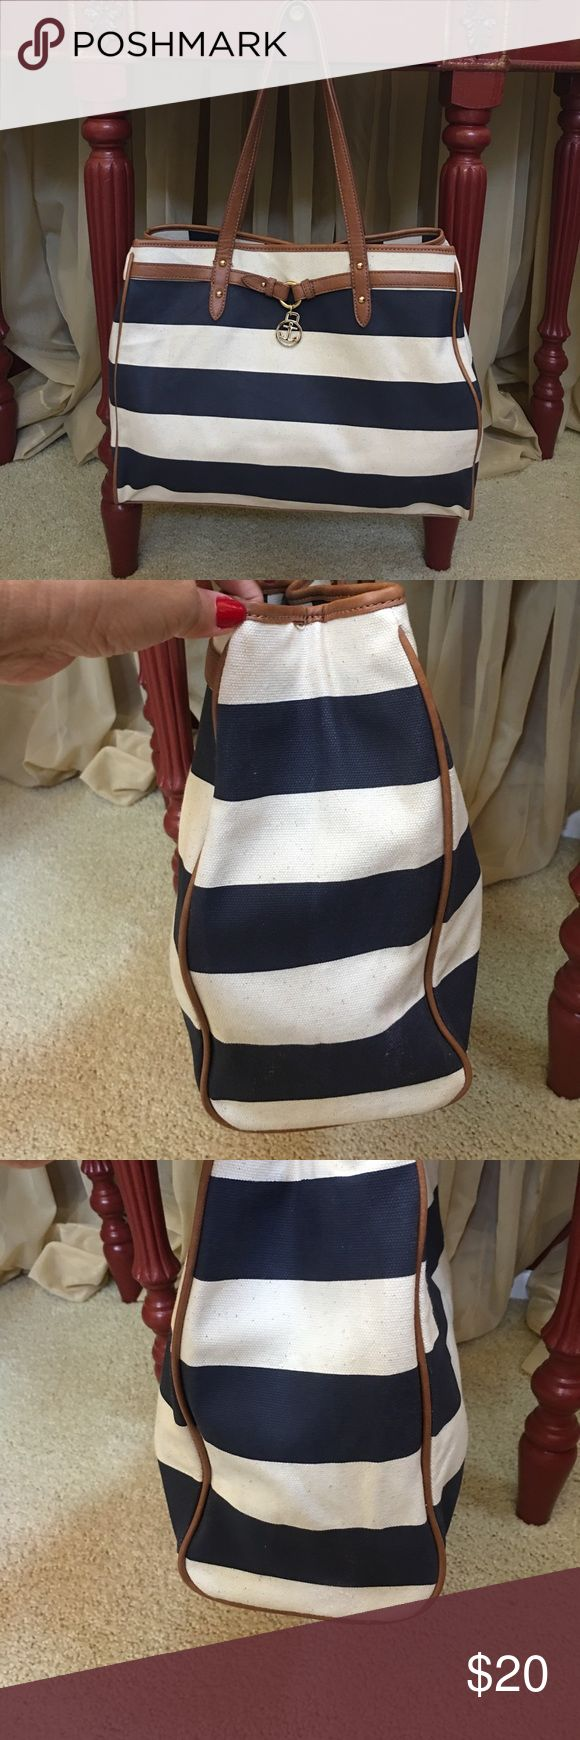 Tommy Hilfiger tote bag Canvas tote bag, Navy blue with cream color. Tan brown handles, bottom and piping. With gold hardware. It has one zipper pocket inside and two open pockets. Great for traveling.⛴🛫🏝 Tommy Hilfiger Bags Totes